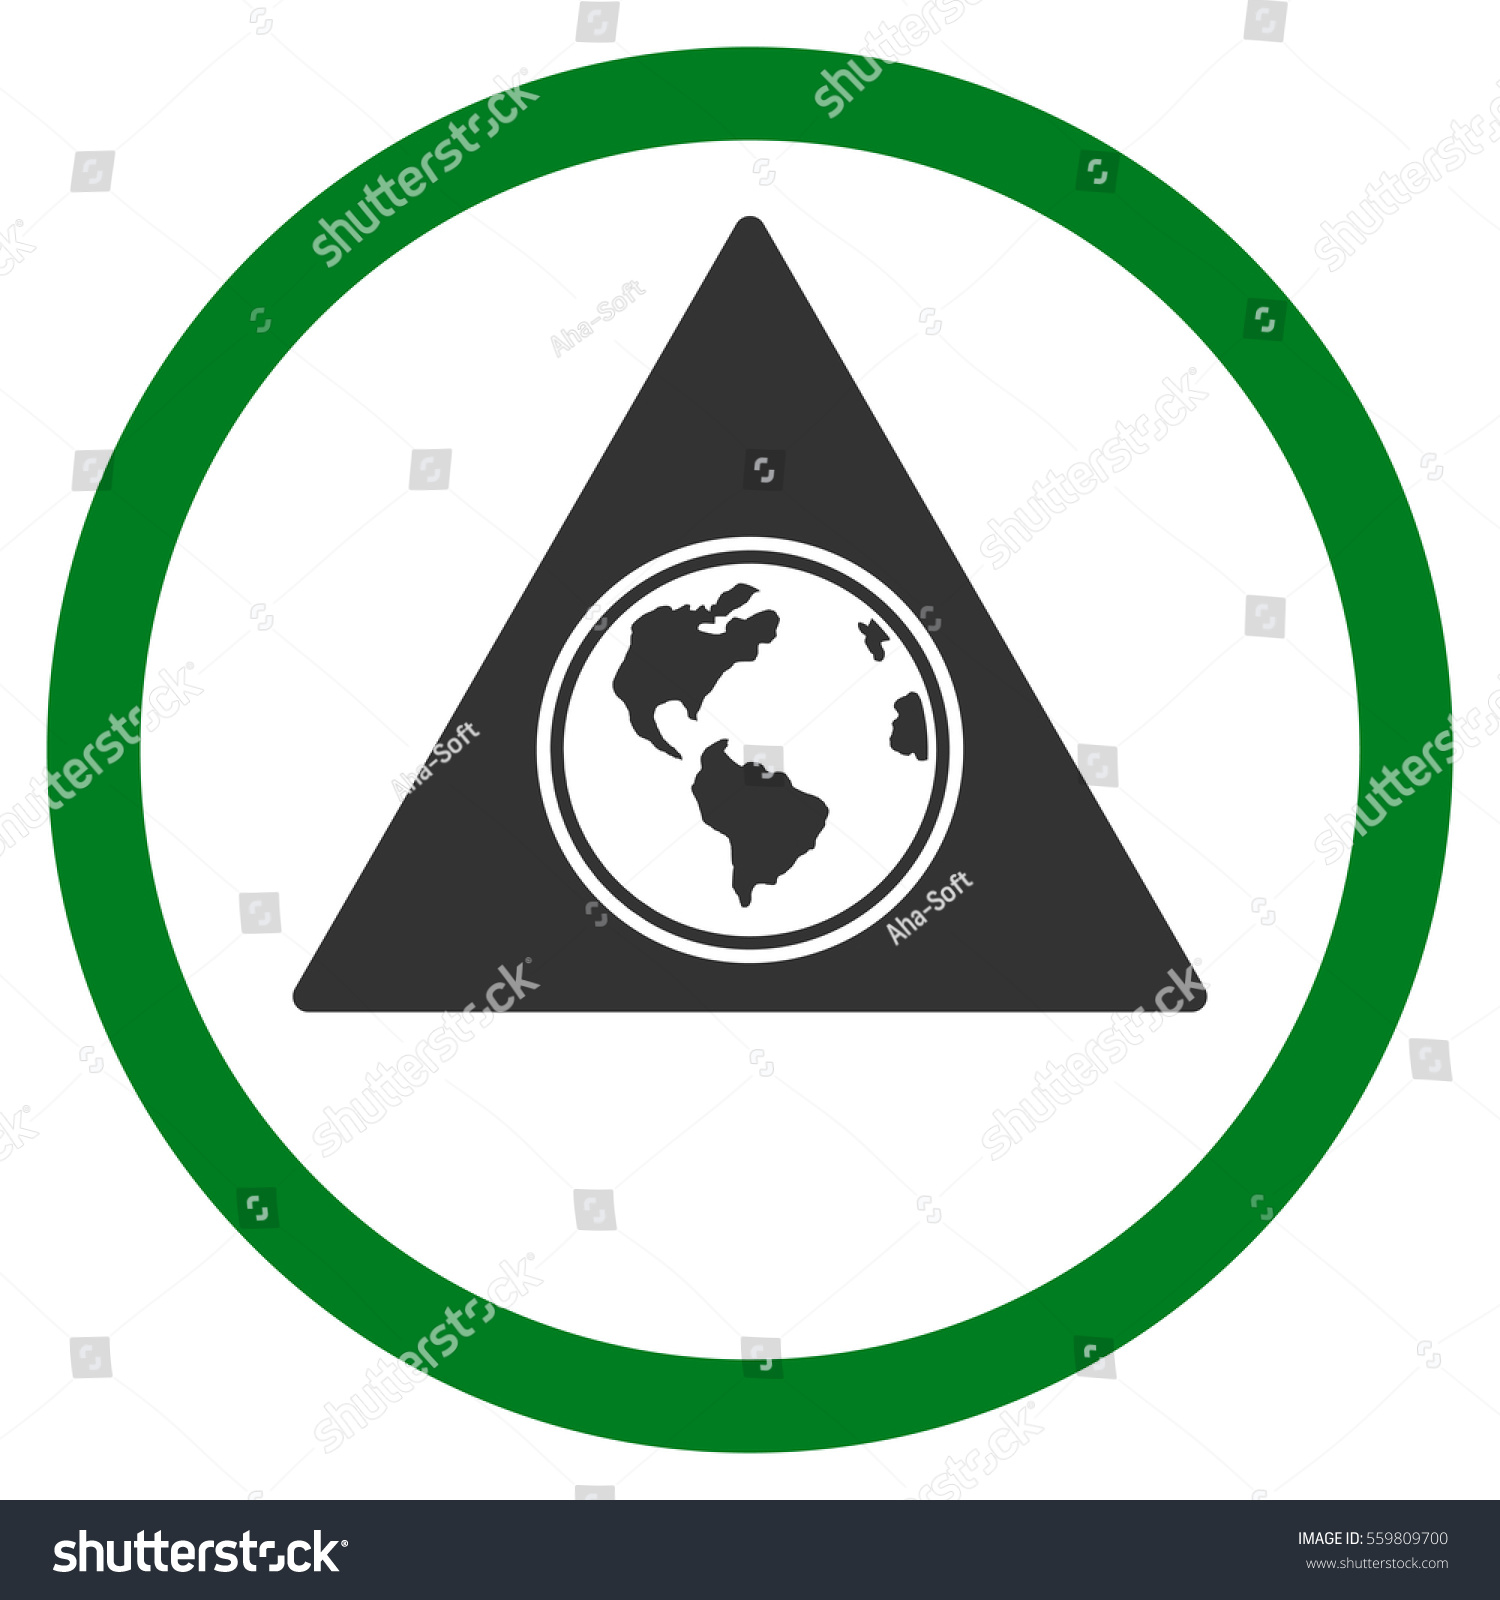 Terra triangle vector bicolor rounded icon stock vector 559809700 terra triangle vector bicolor rounded icon image style is a flat icon symbol inside a buycottarizona Image collections